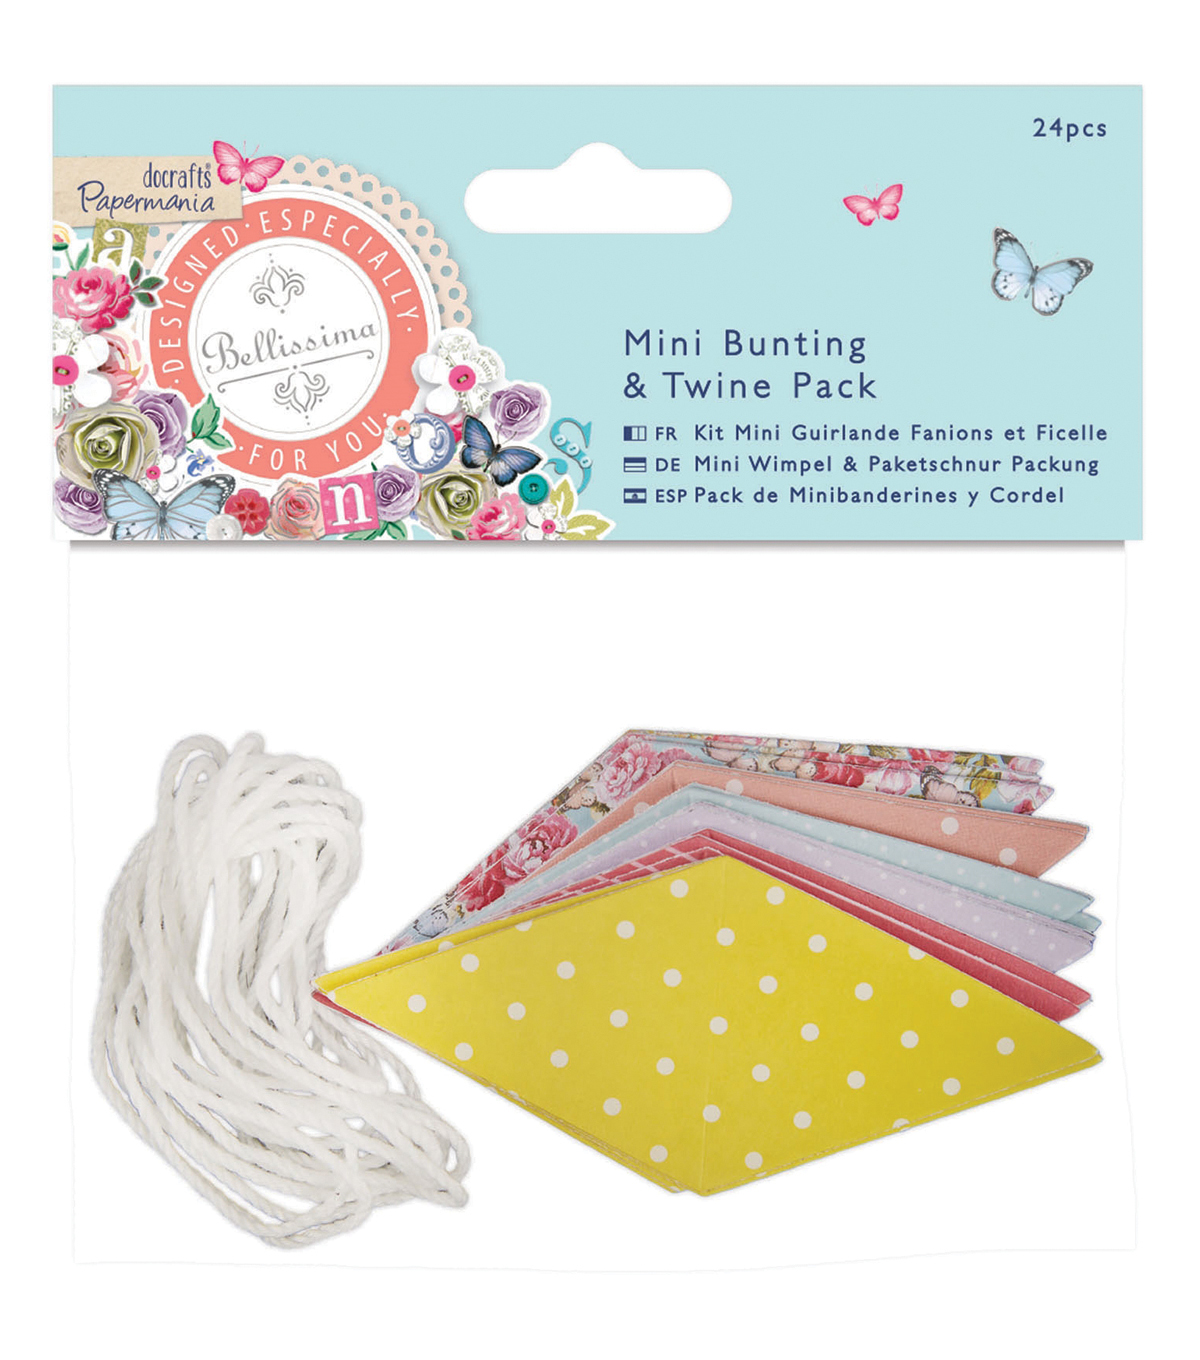 Papermania Bellissima Mini Bunting & Twine Pack